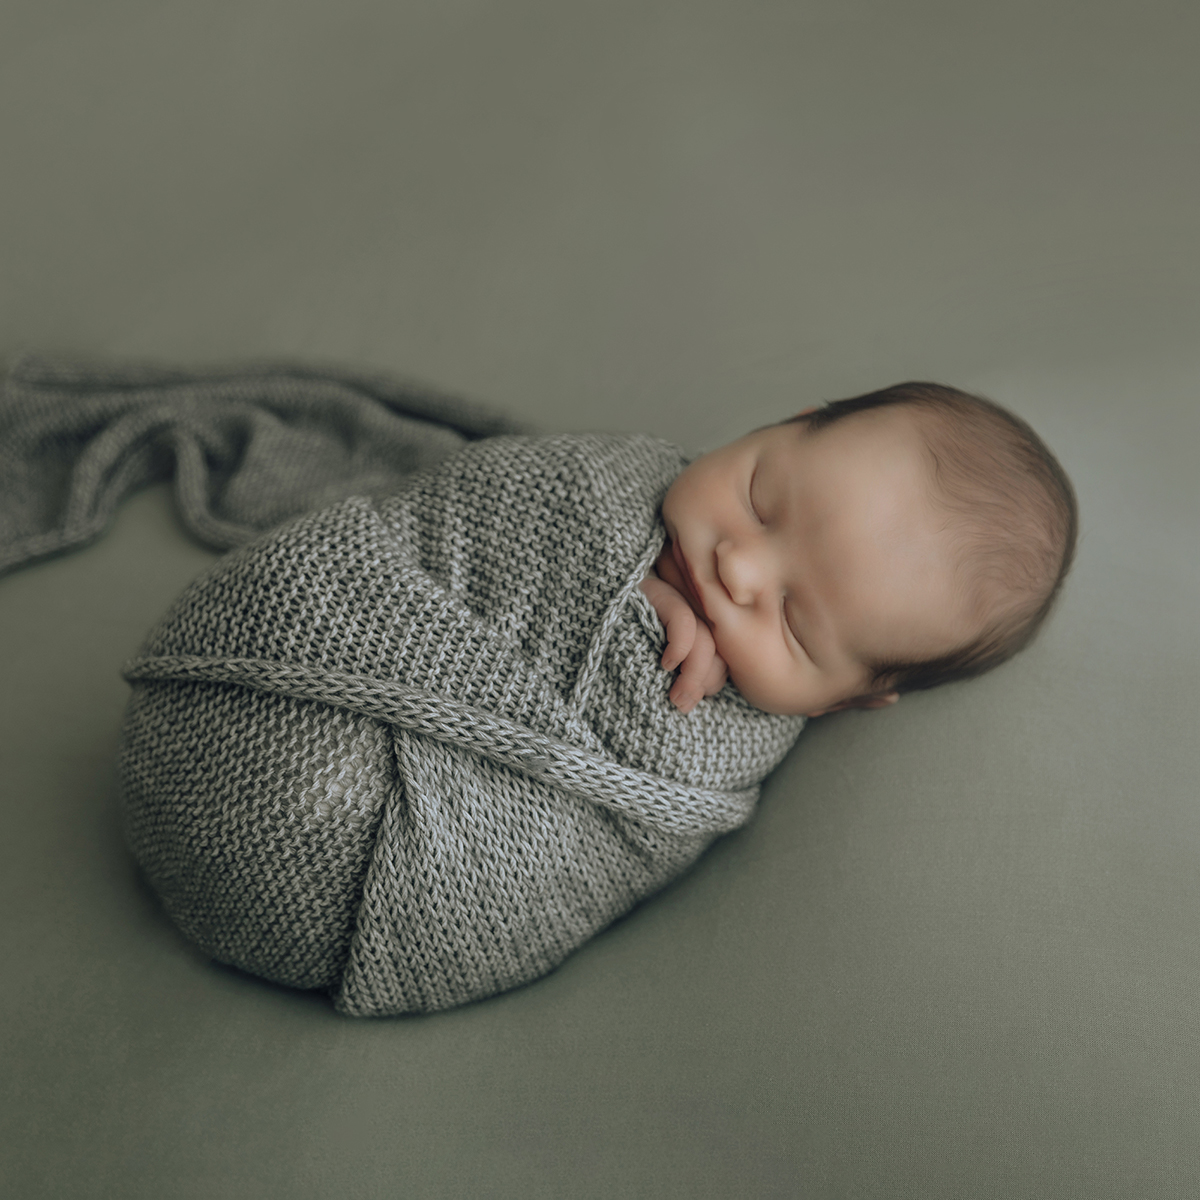 Newborn baby swaddles in gray knit wrap